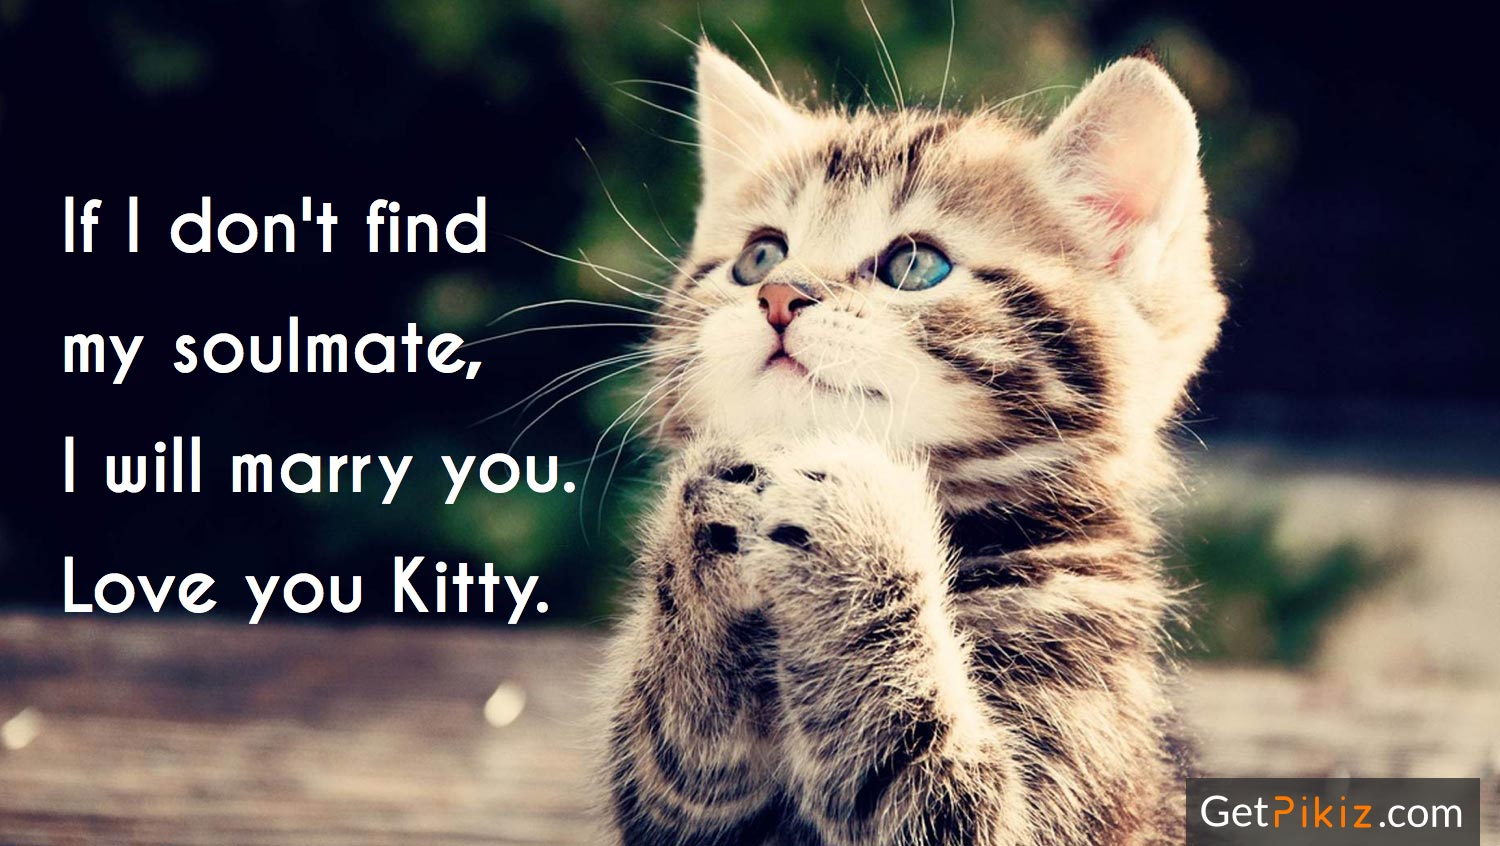 If I don't find my soulmate, I will marry you. Love you Kitty.